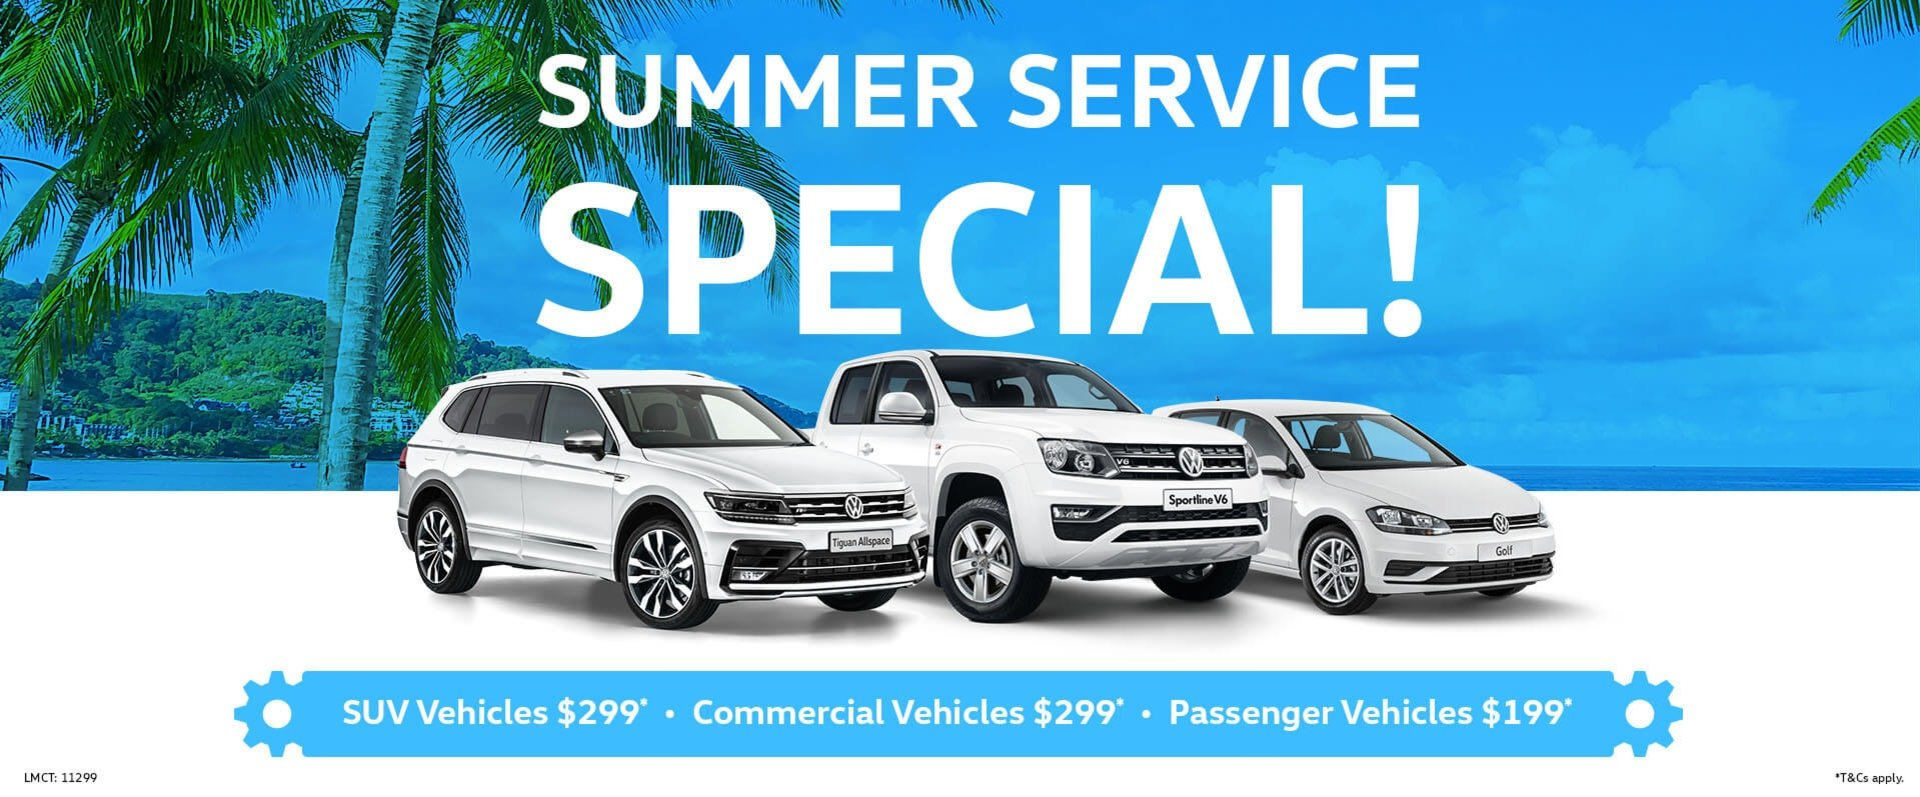 Ferntree Gully - Summer Service Special